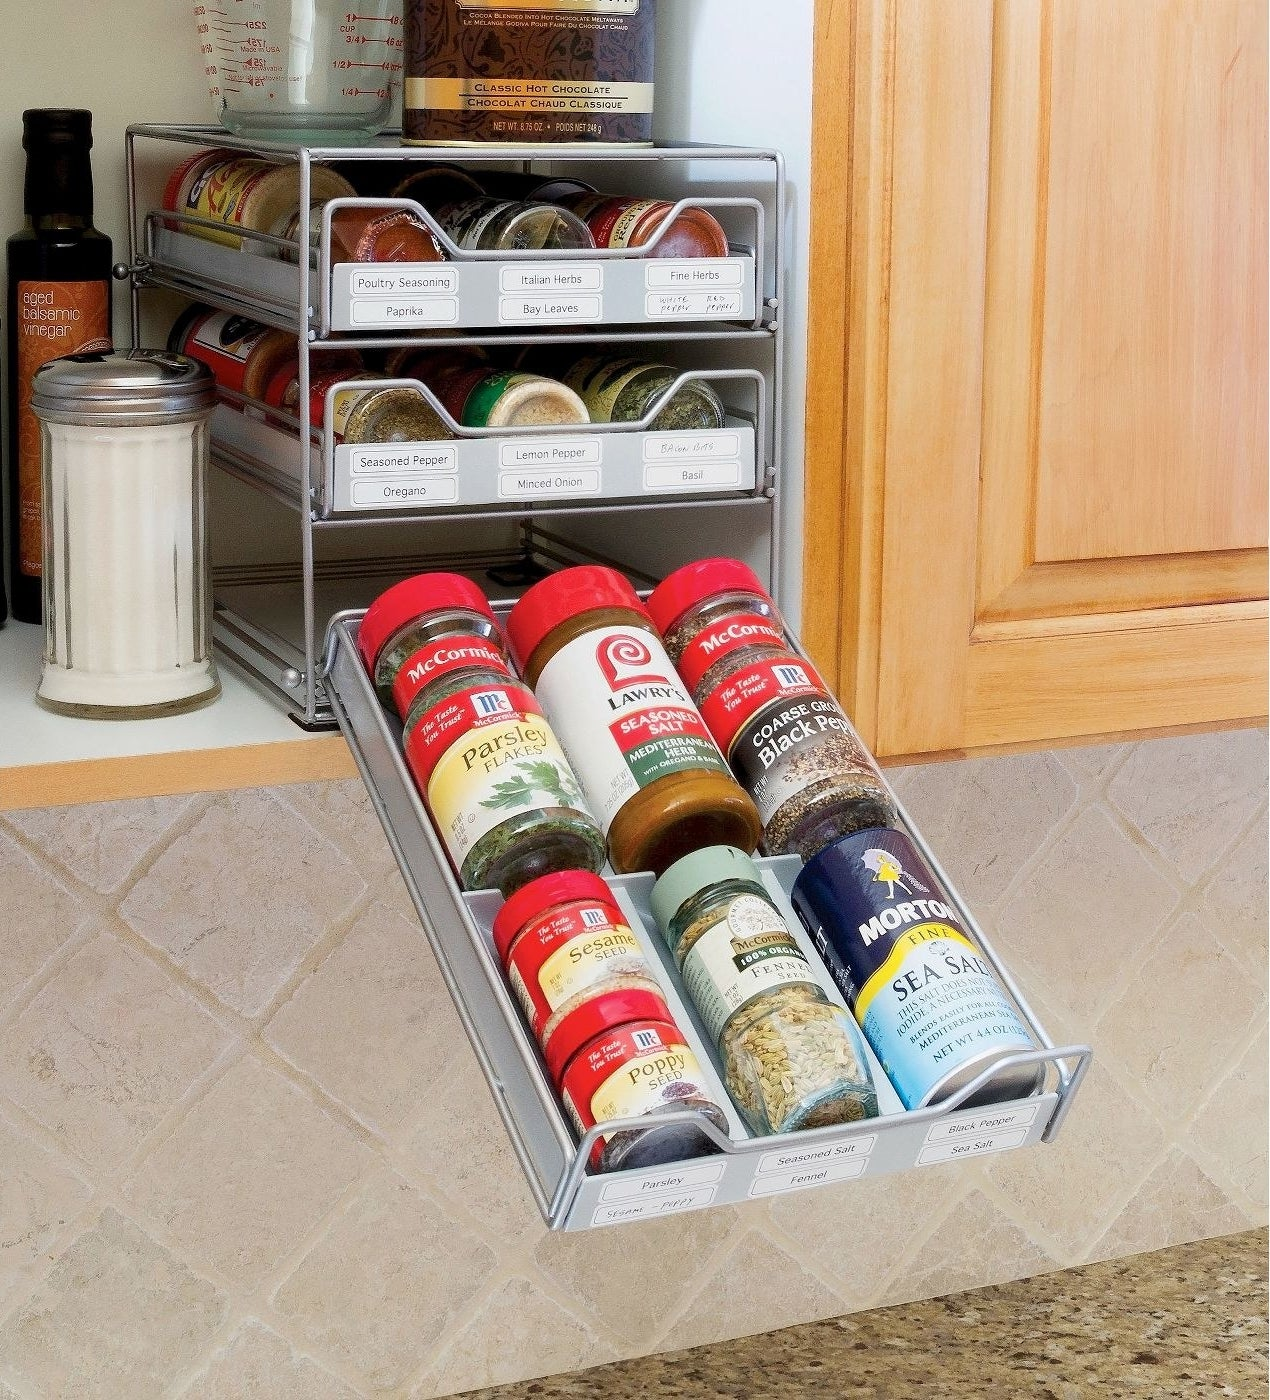 three-tier tilt down spice drawer filled with spice jars